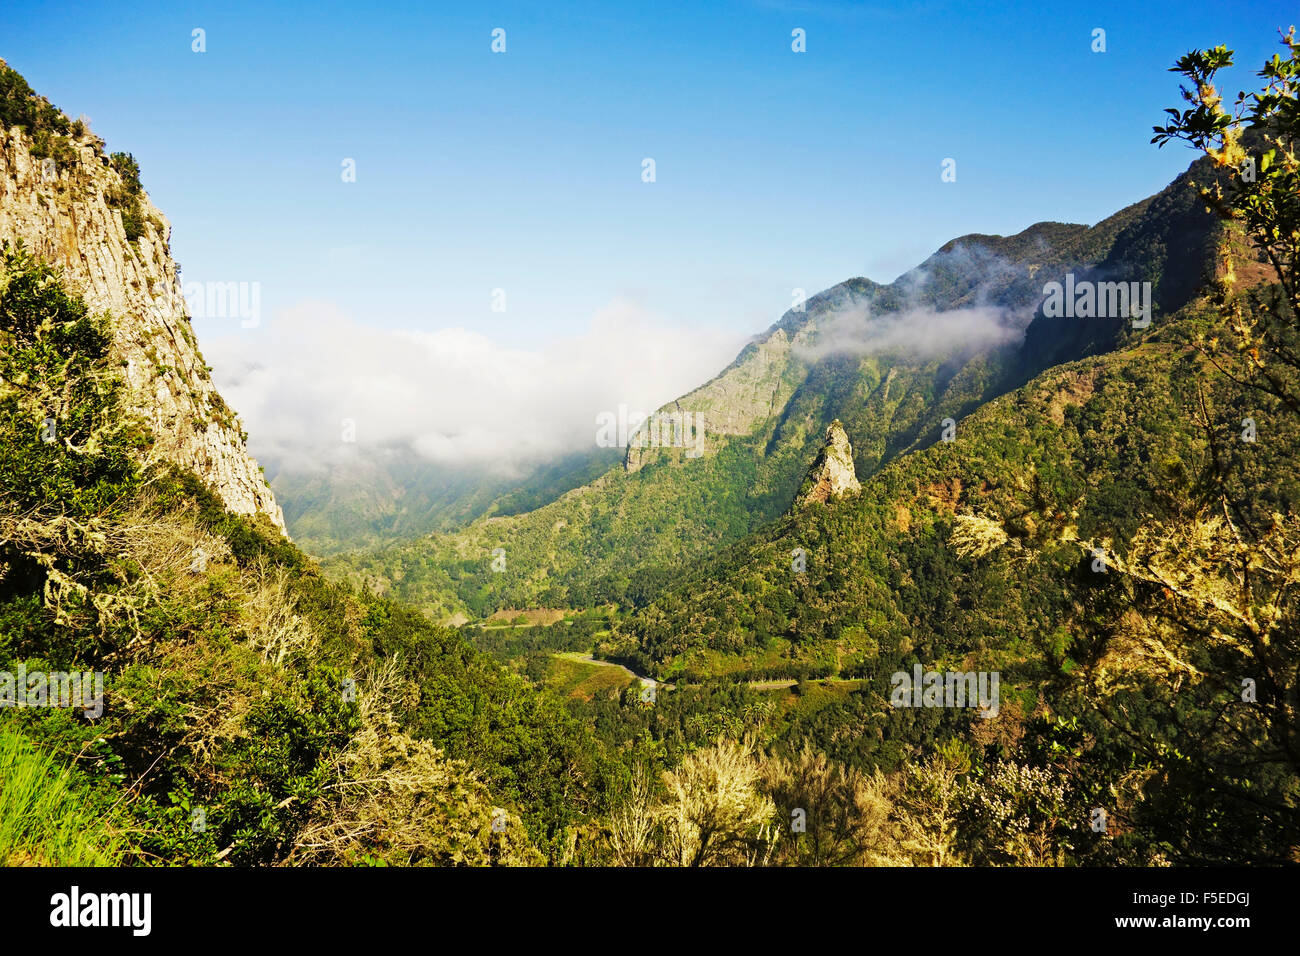 Valle de Hermigua, Parque Nacional de Garajonay, UNESCO World Heritage Site, La Gomera, Canary Islands, Spain, Europe - Stock Image